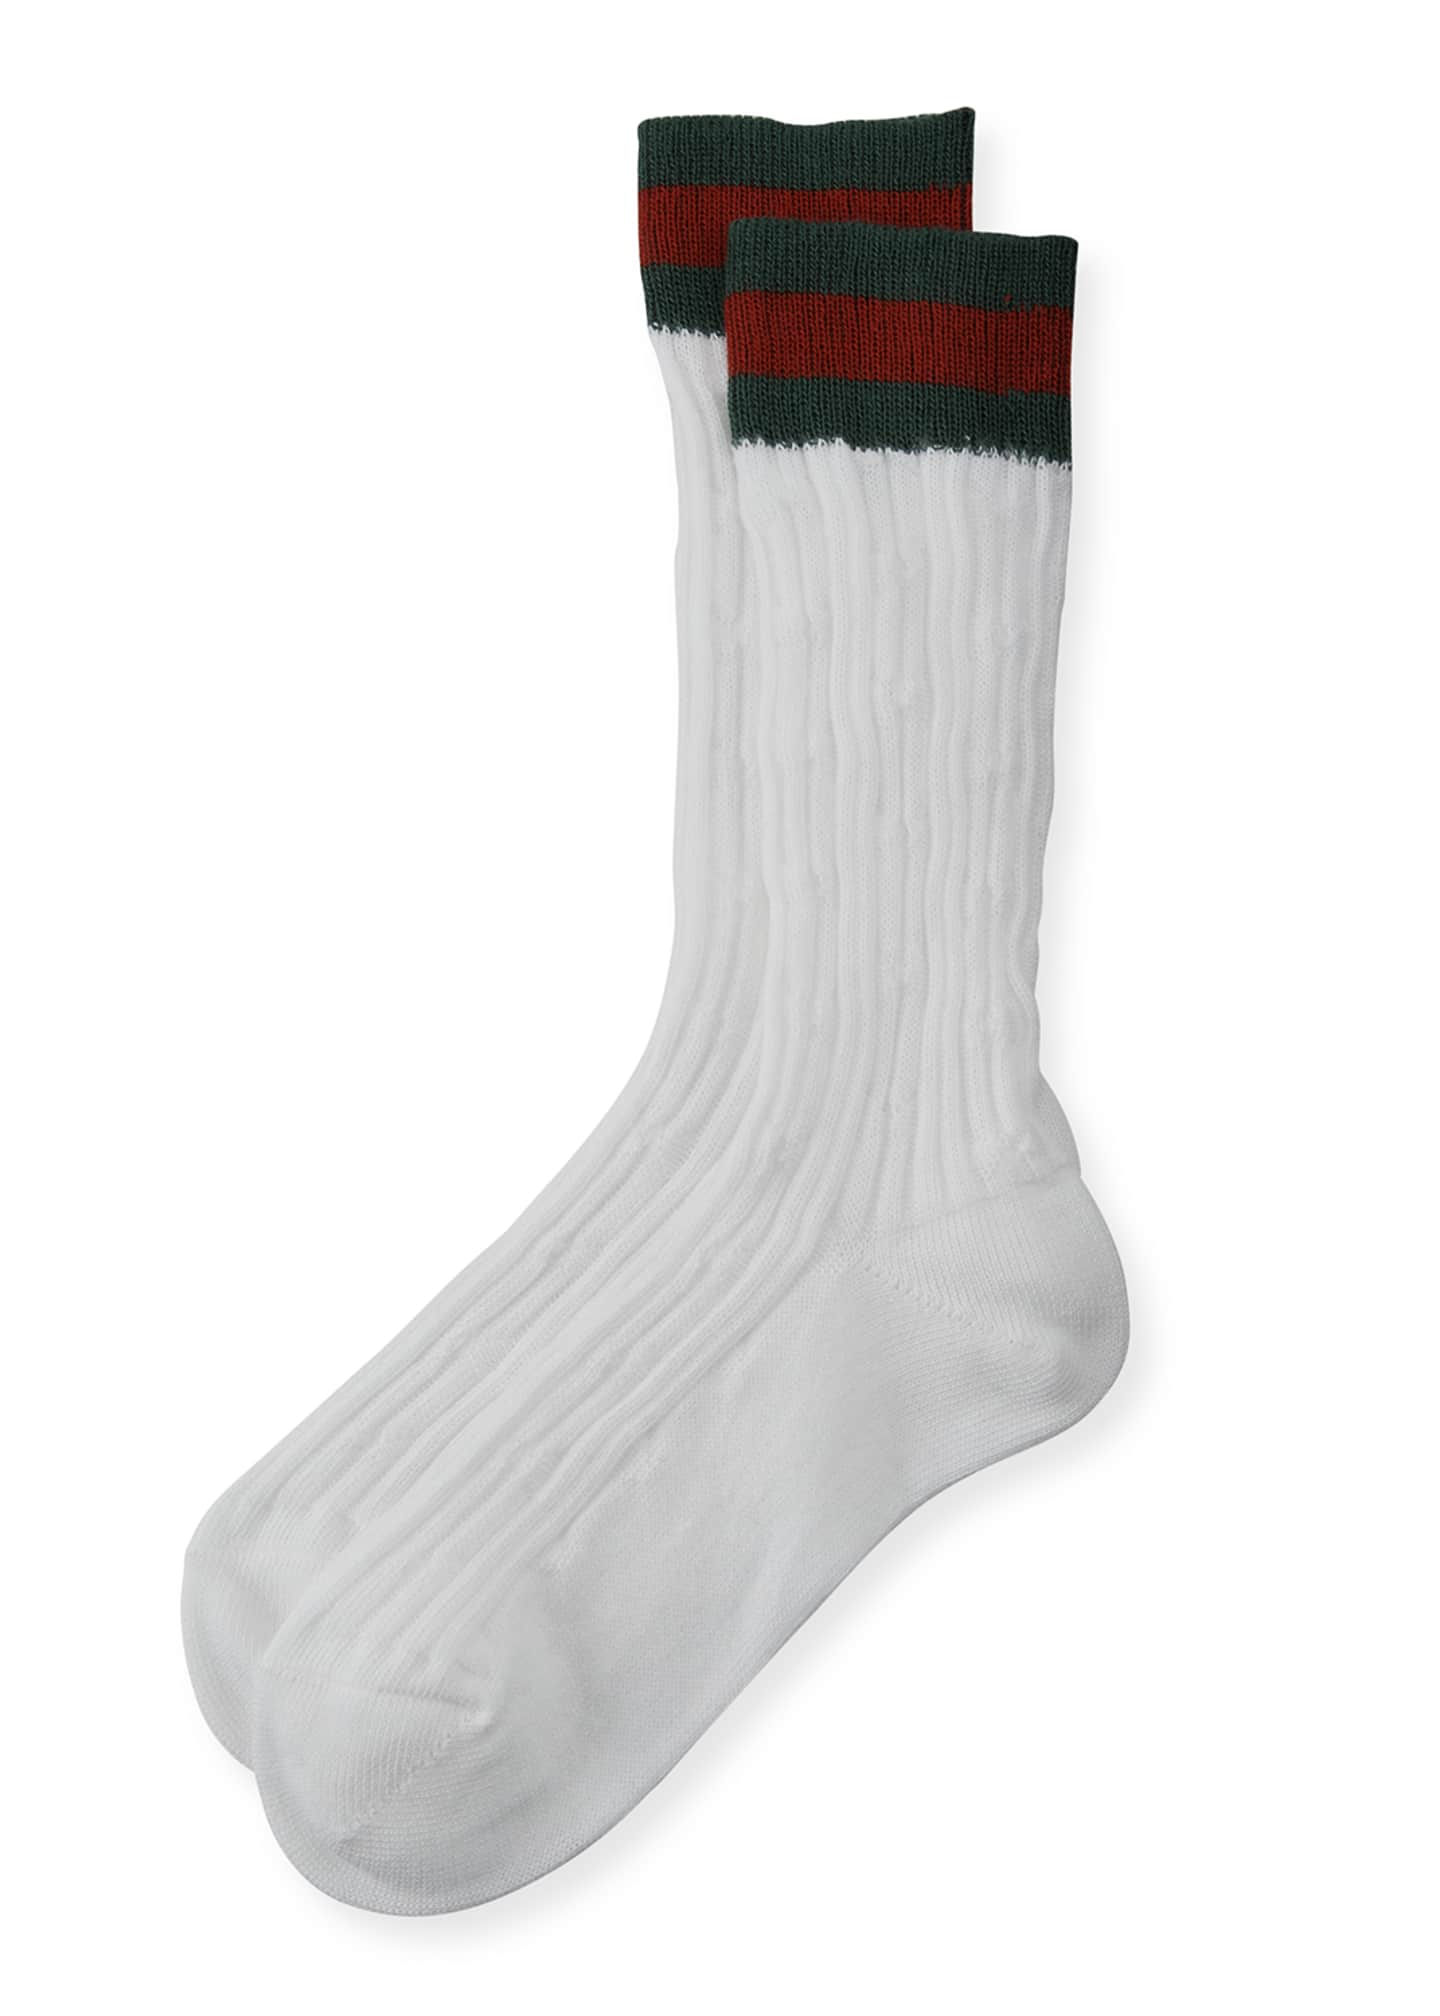 Gucci Children's Knit Socks, Size 2-10